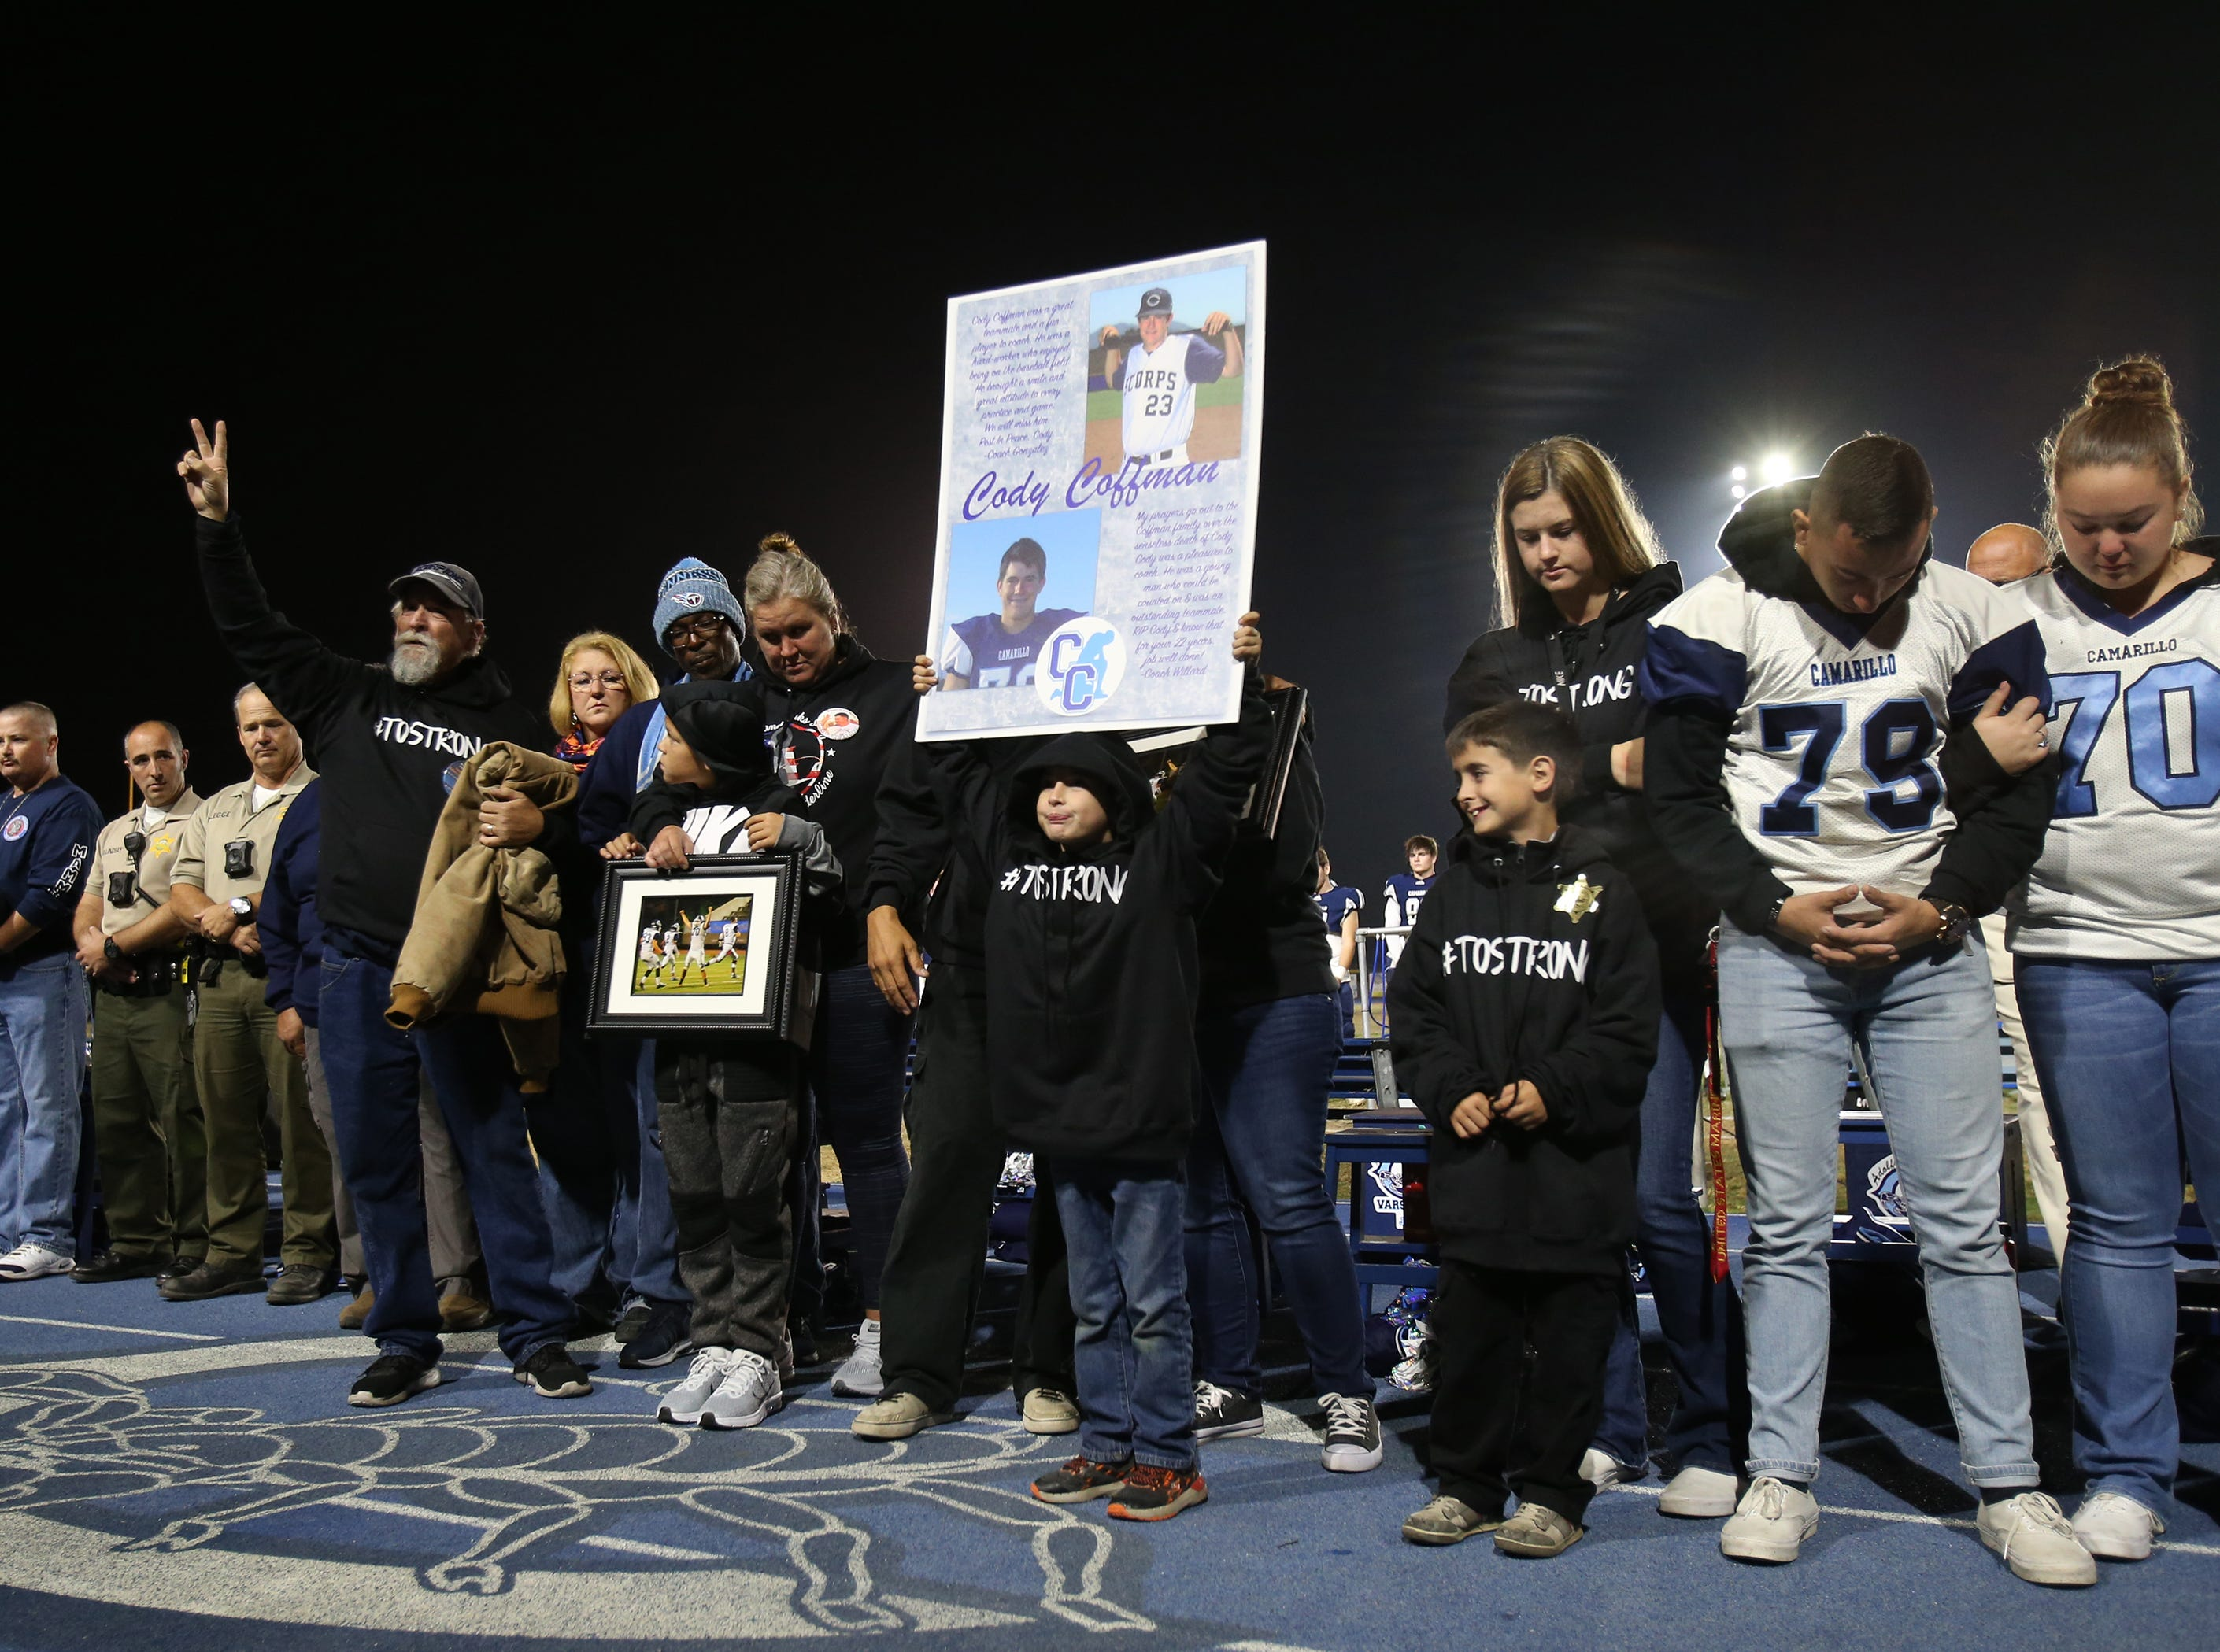 The family of Cody Gifford-Coffman was honored before Friday night's playoff game at Camarillo High on Friday night. Gifford-Coffman, who was killed during the mass shooting at the Borderline Bar & Grill in Thousand Oaks last week, was a former player and graduate of the school.